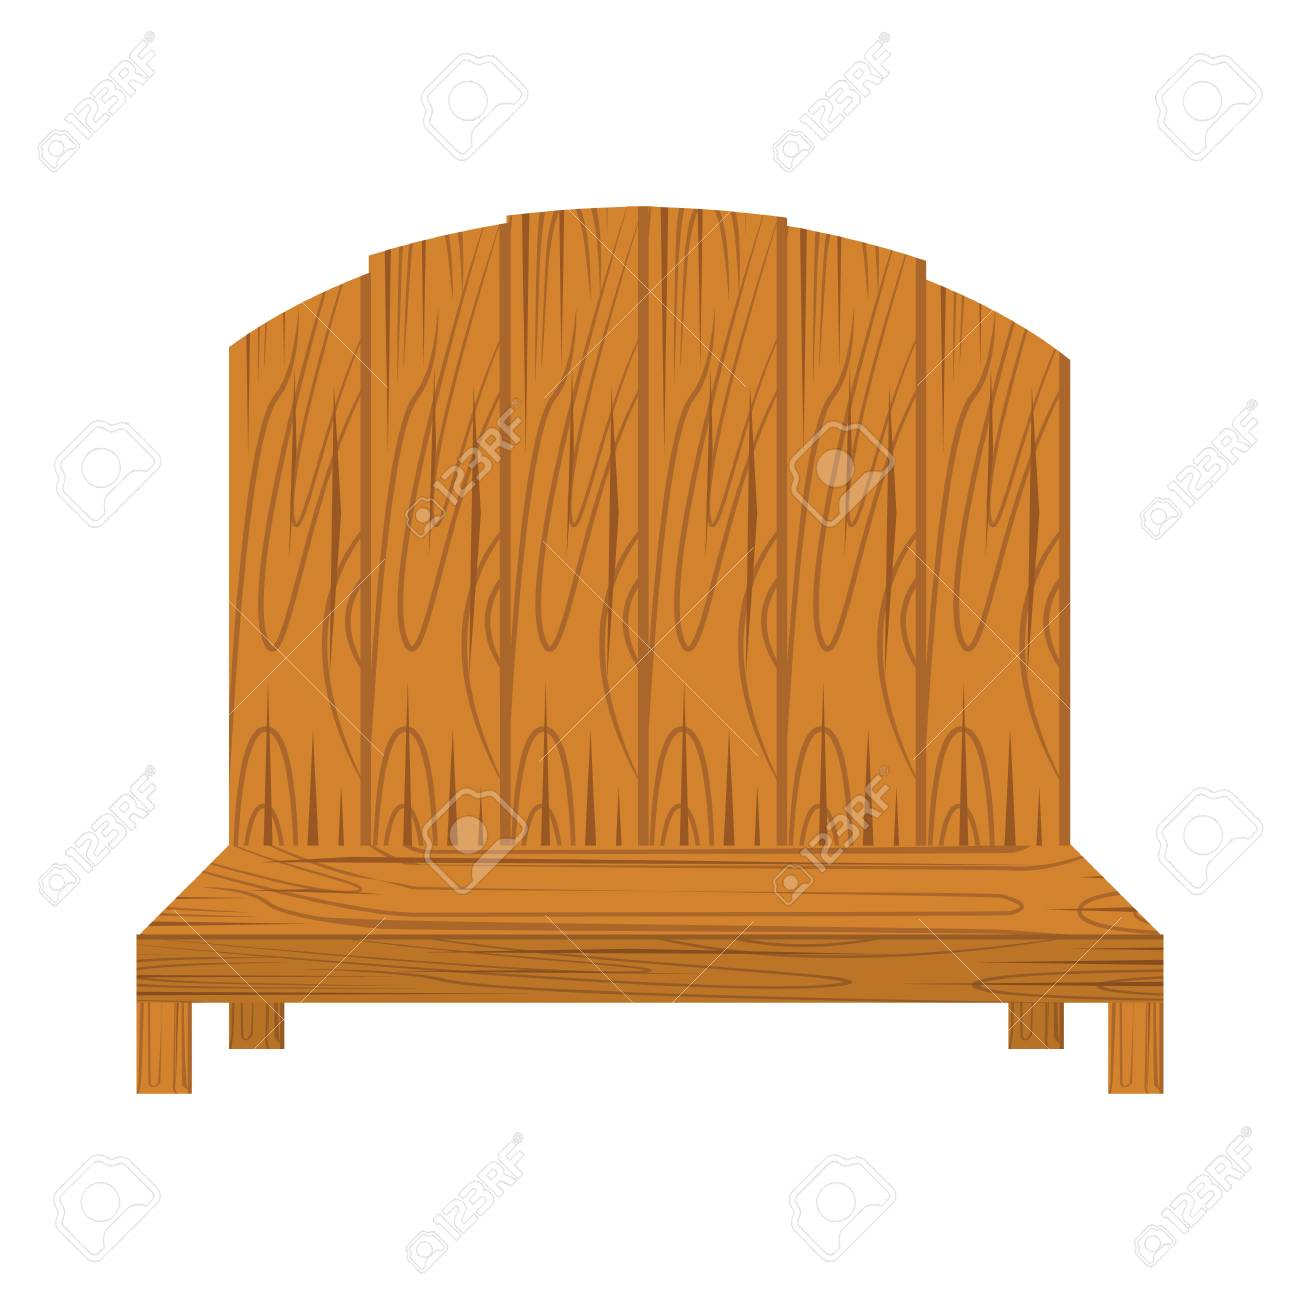 Remarkable Wooden Bench Isolated Illustration On White Background Caraccident5 Cool Chair Designs And Ideas Caraccident5Info